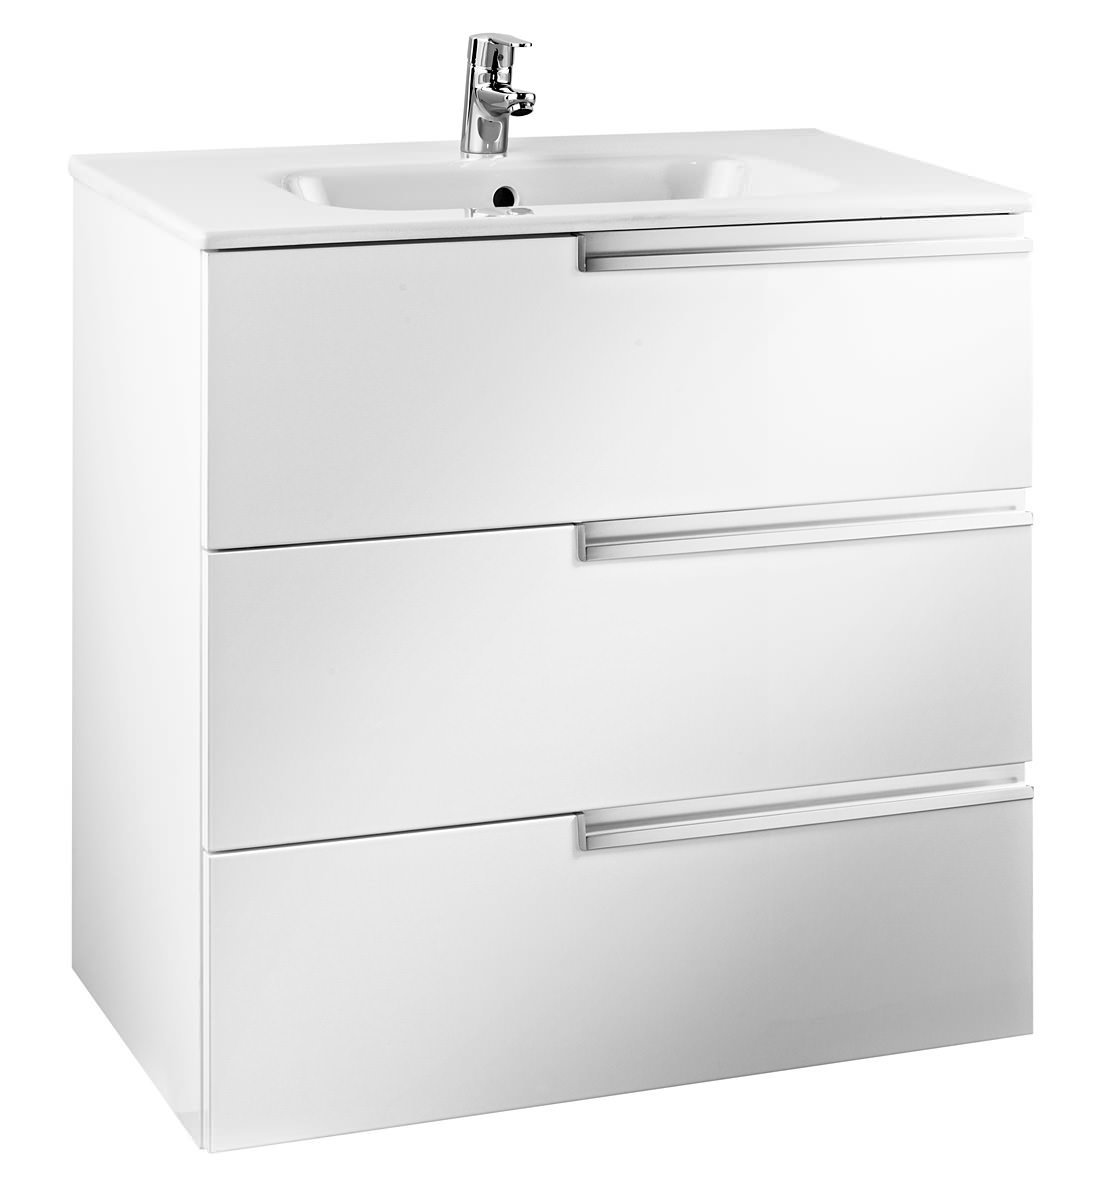 Roca Victoria N Unik Basin And Unit With 3 Drawers 800mm